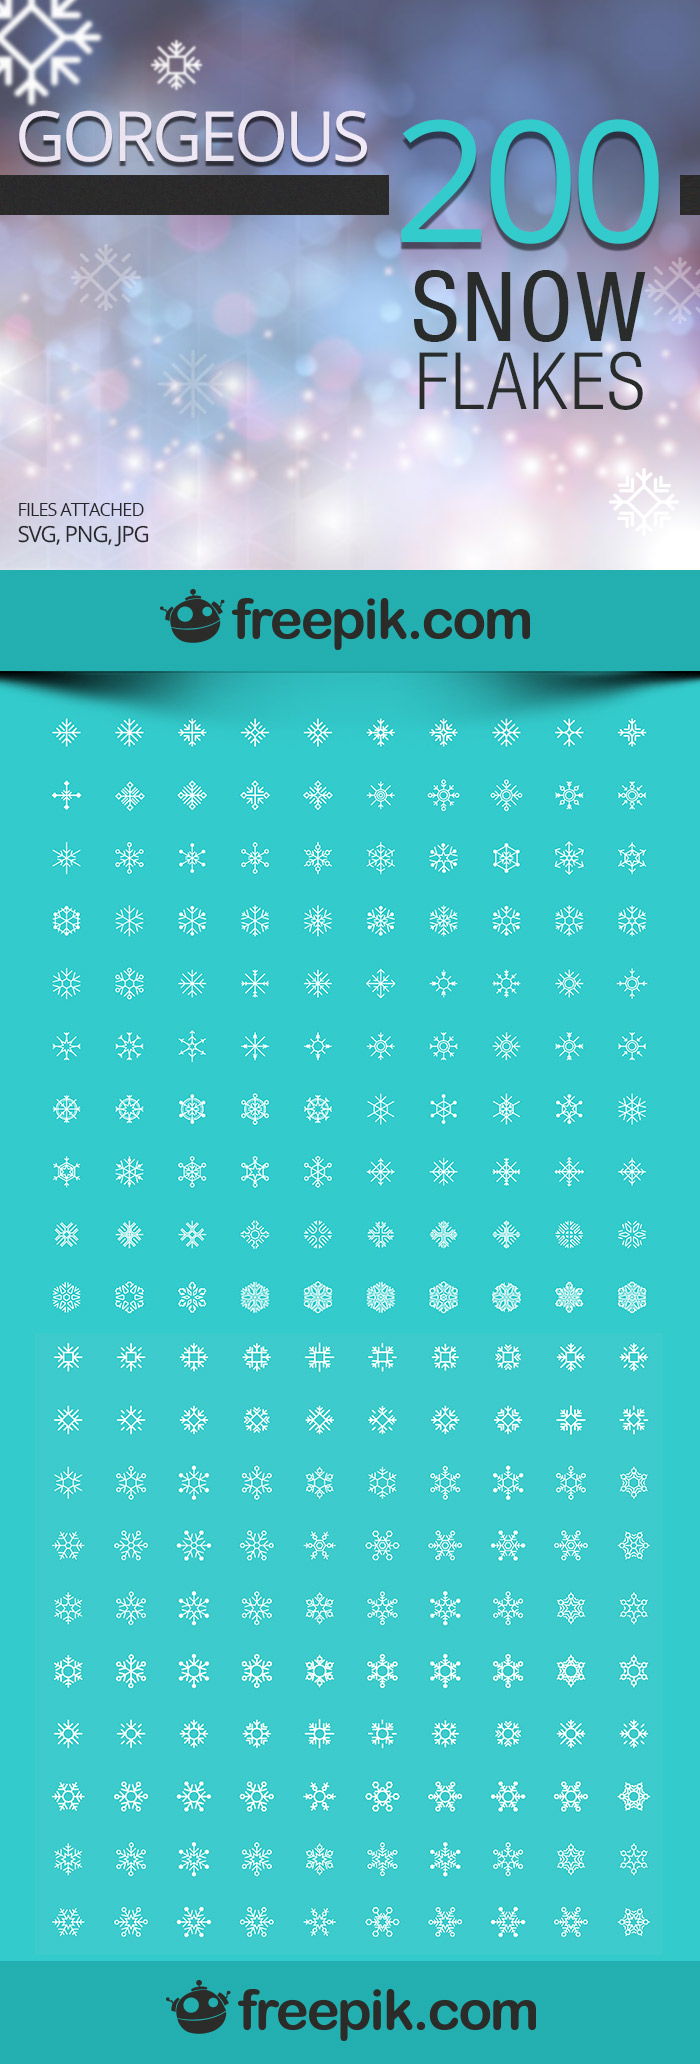 Free Snowflakes Icons for Your Projects | Downgraf.com